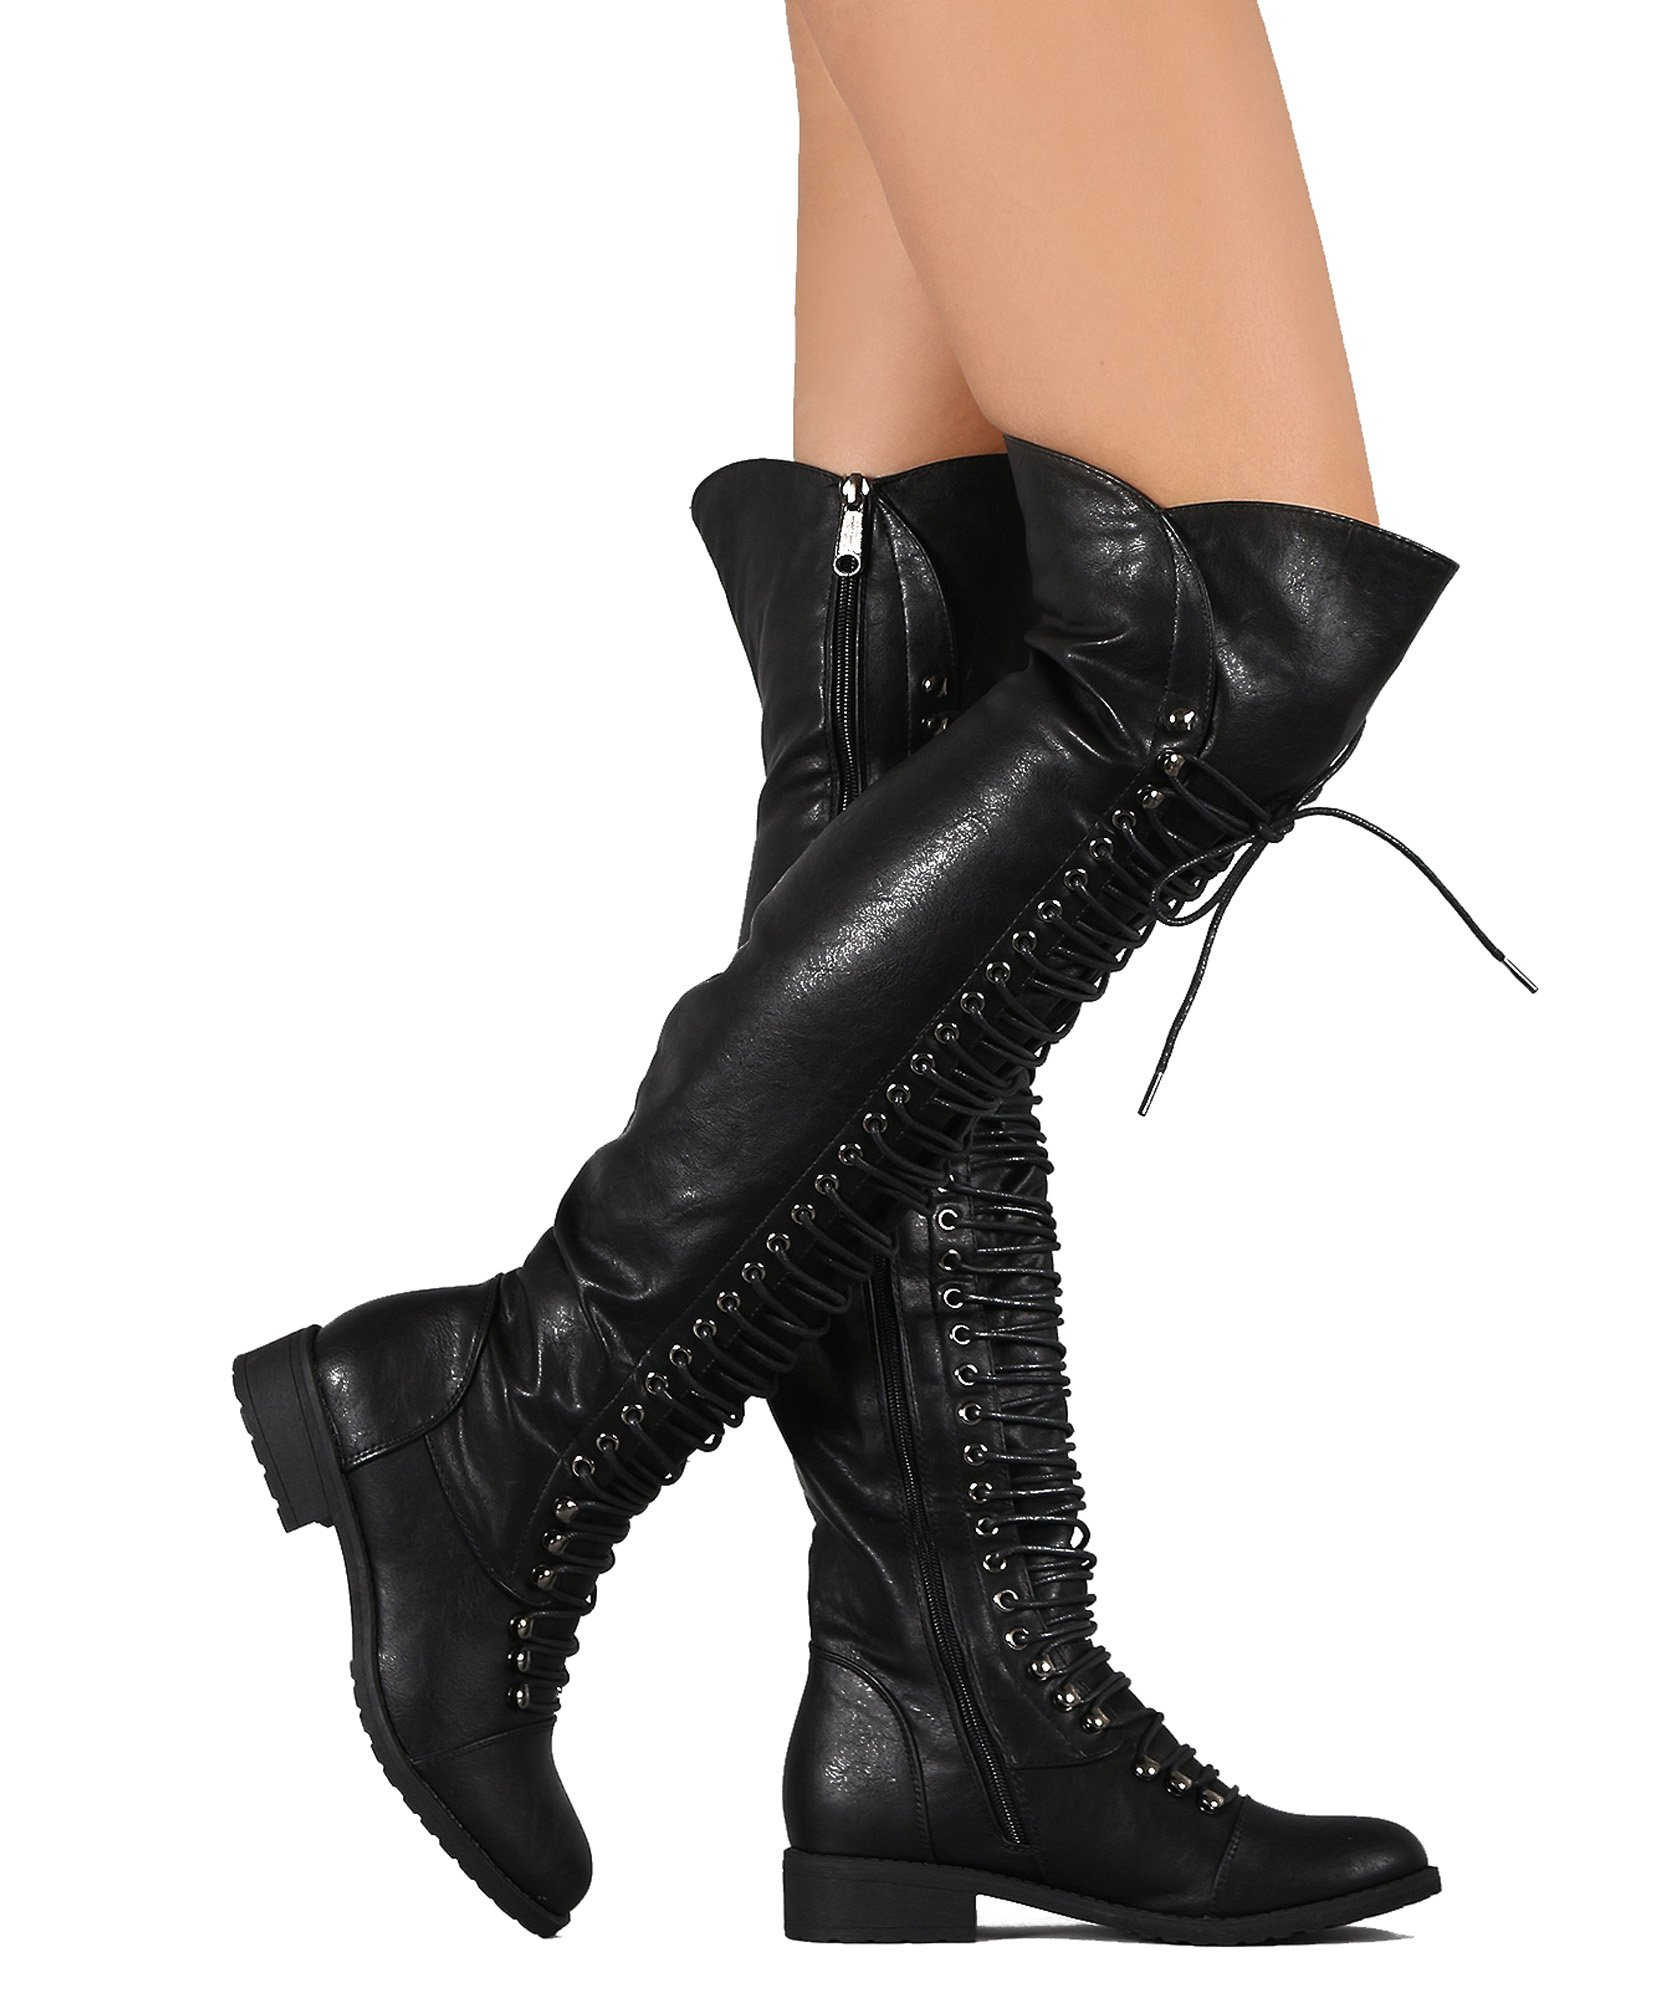 RF ROOM OF FASHION Women's Lace Up Military Over The Knee OTK Combat Riding Boots Black (7)